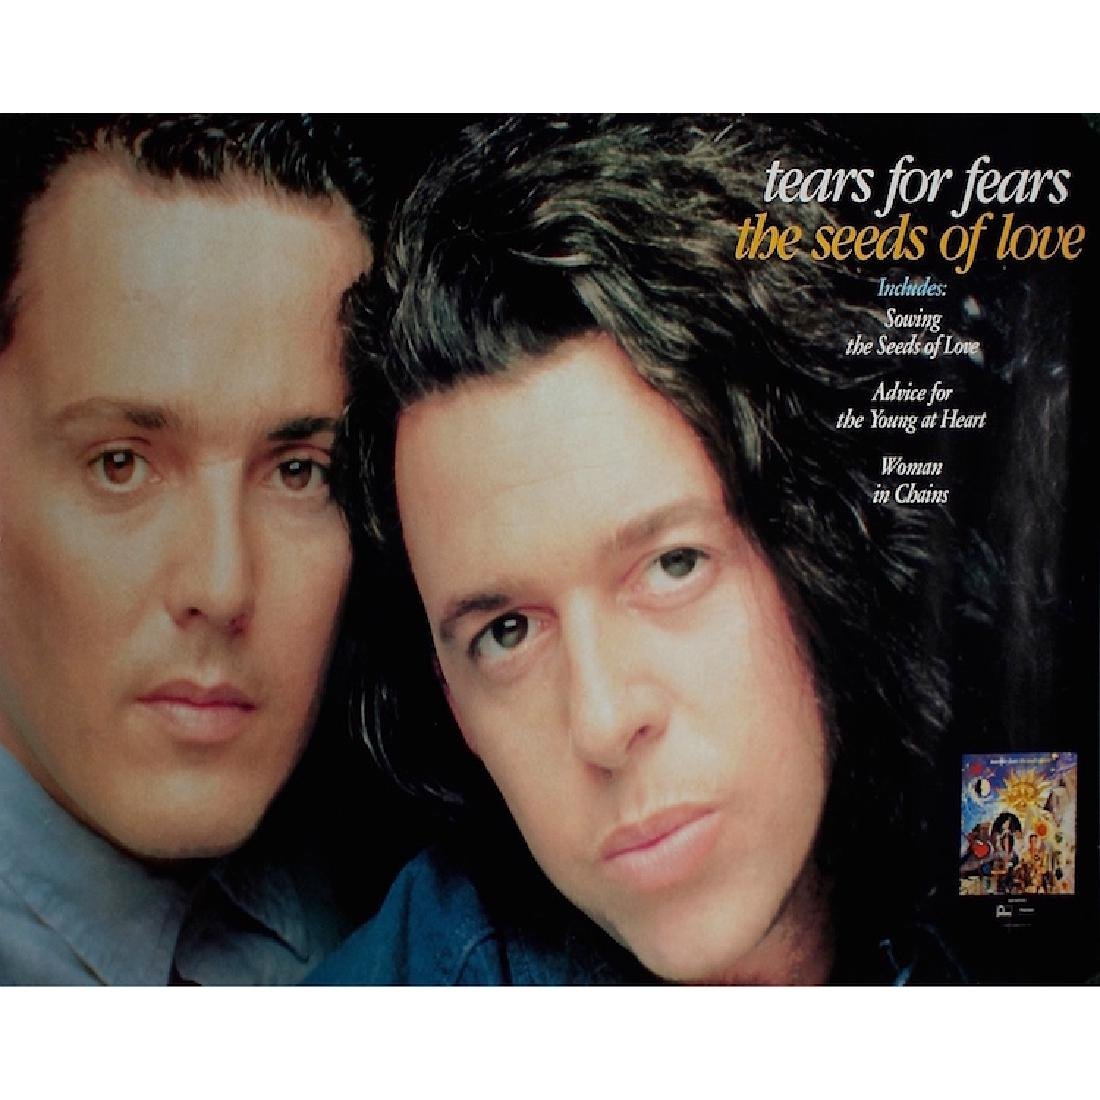 Tears For Fears - The Seeds of Love - Poster